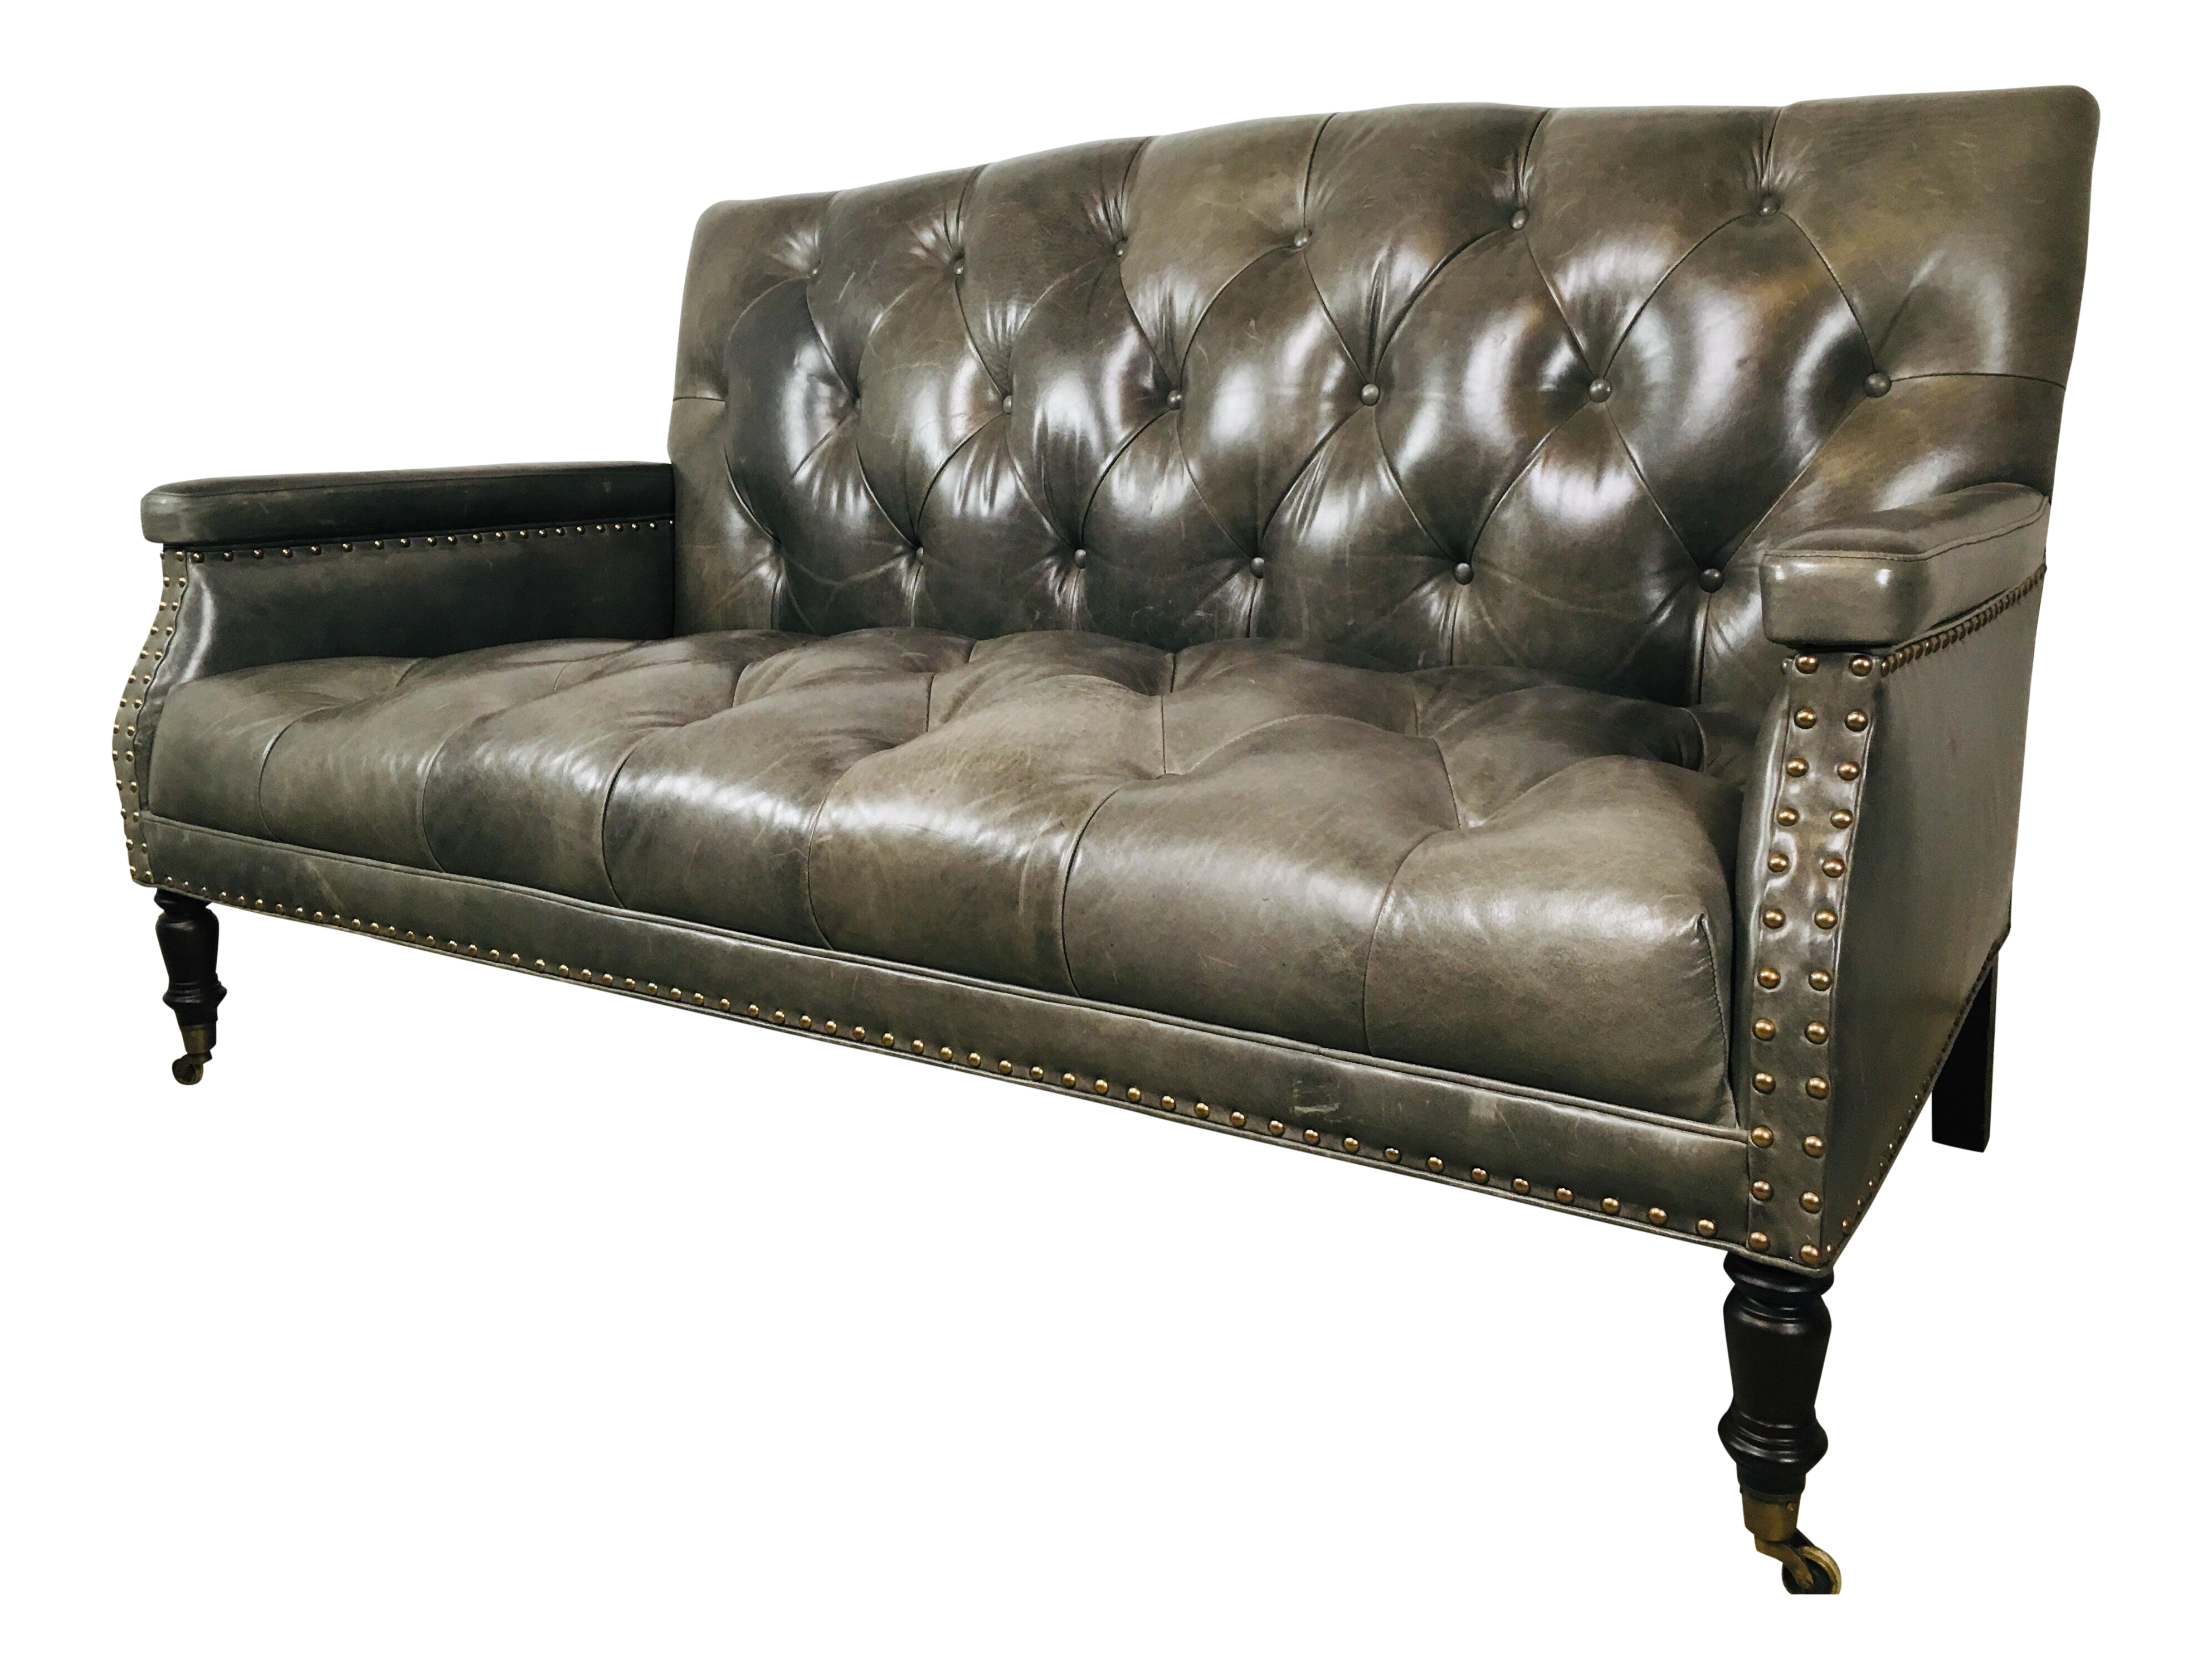 21st Century Vintage Contemporary Leather Tufted Sofa | Chairish